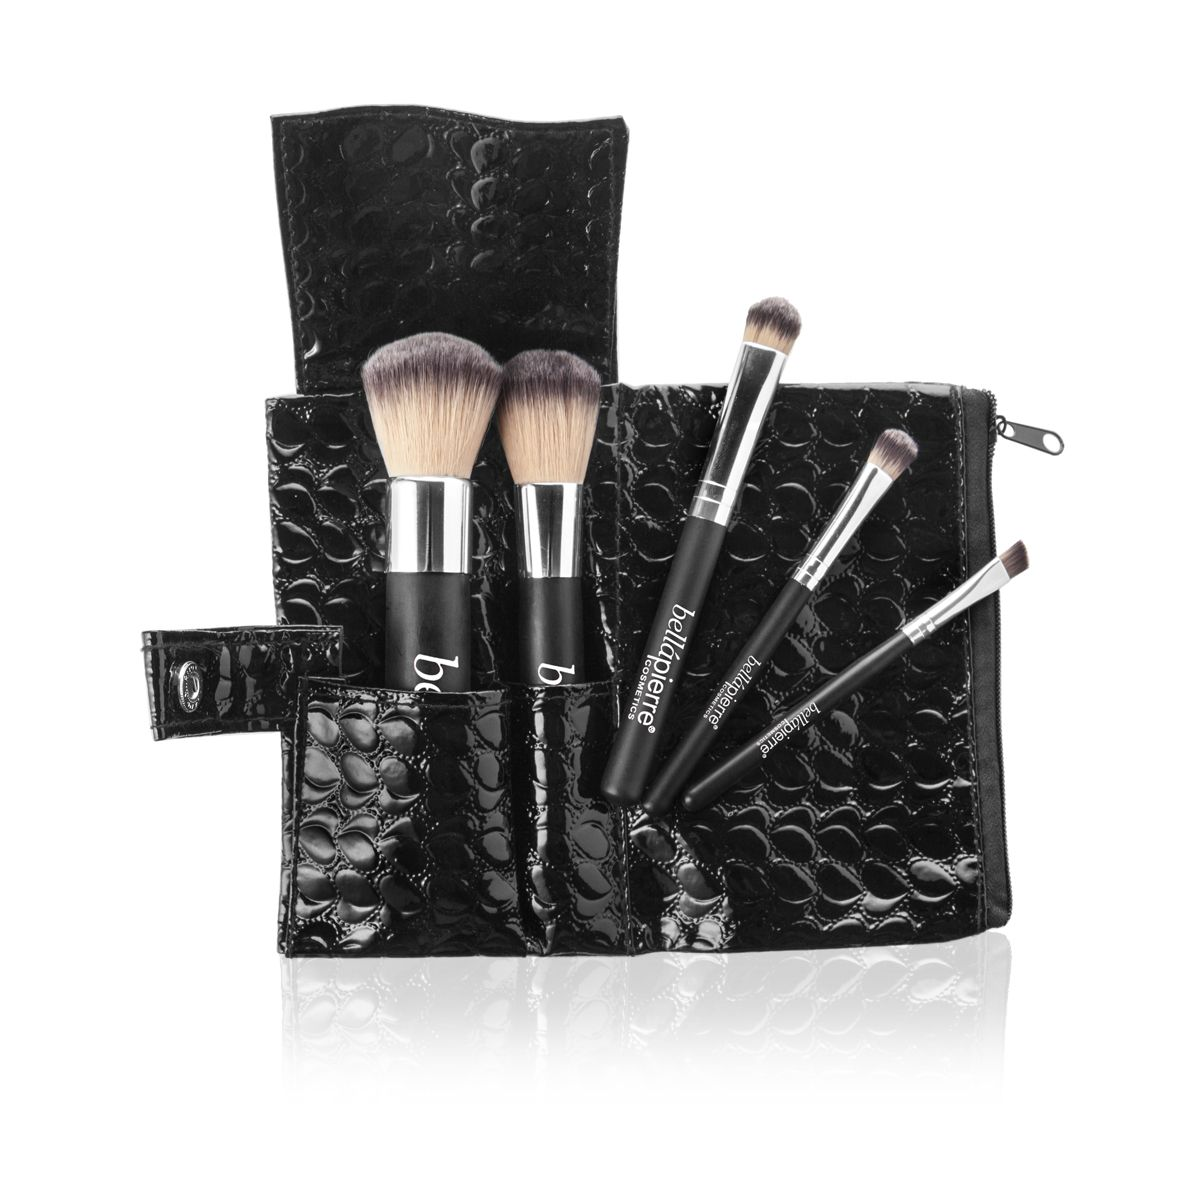 Travel Brush Set 5PC - Bellapierrechile